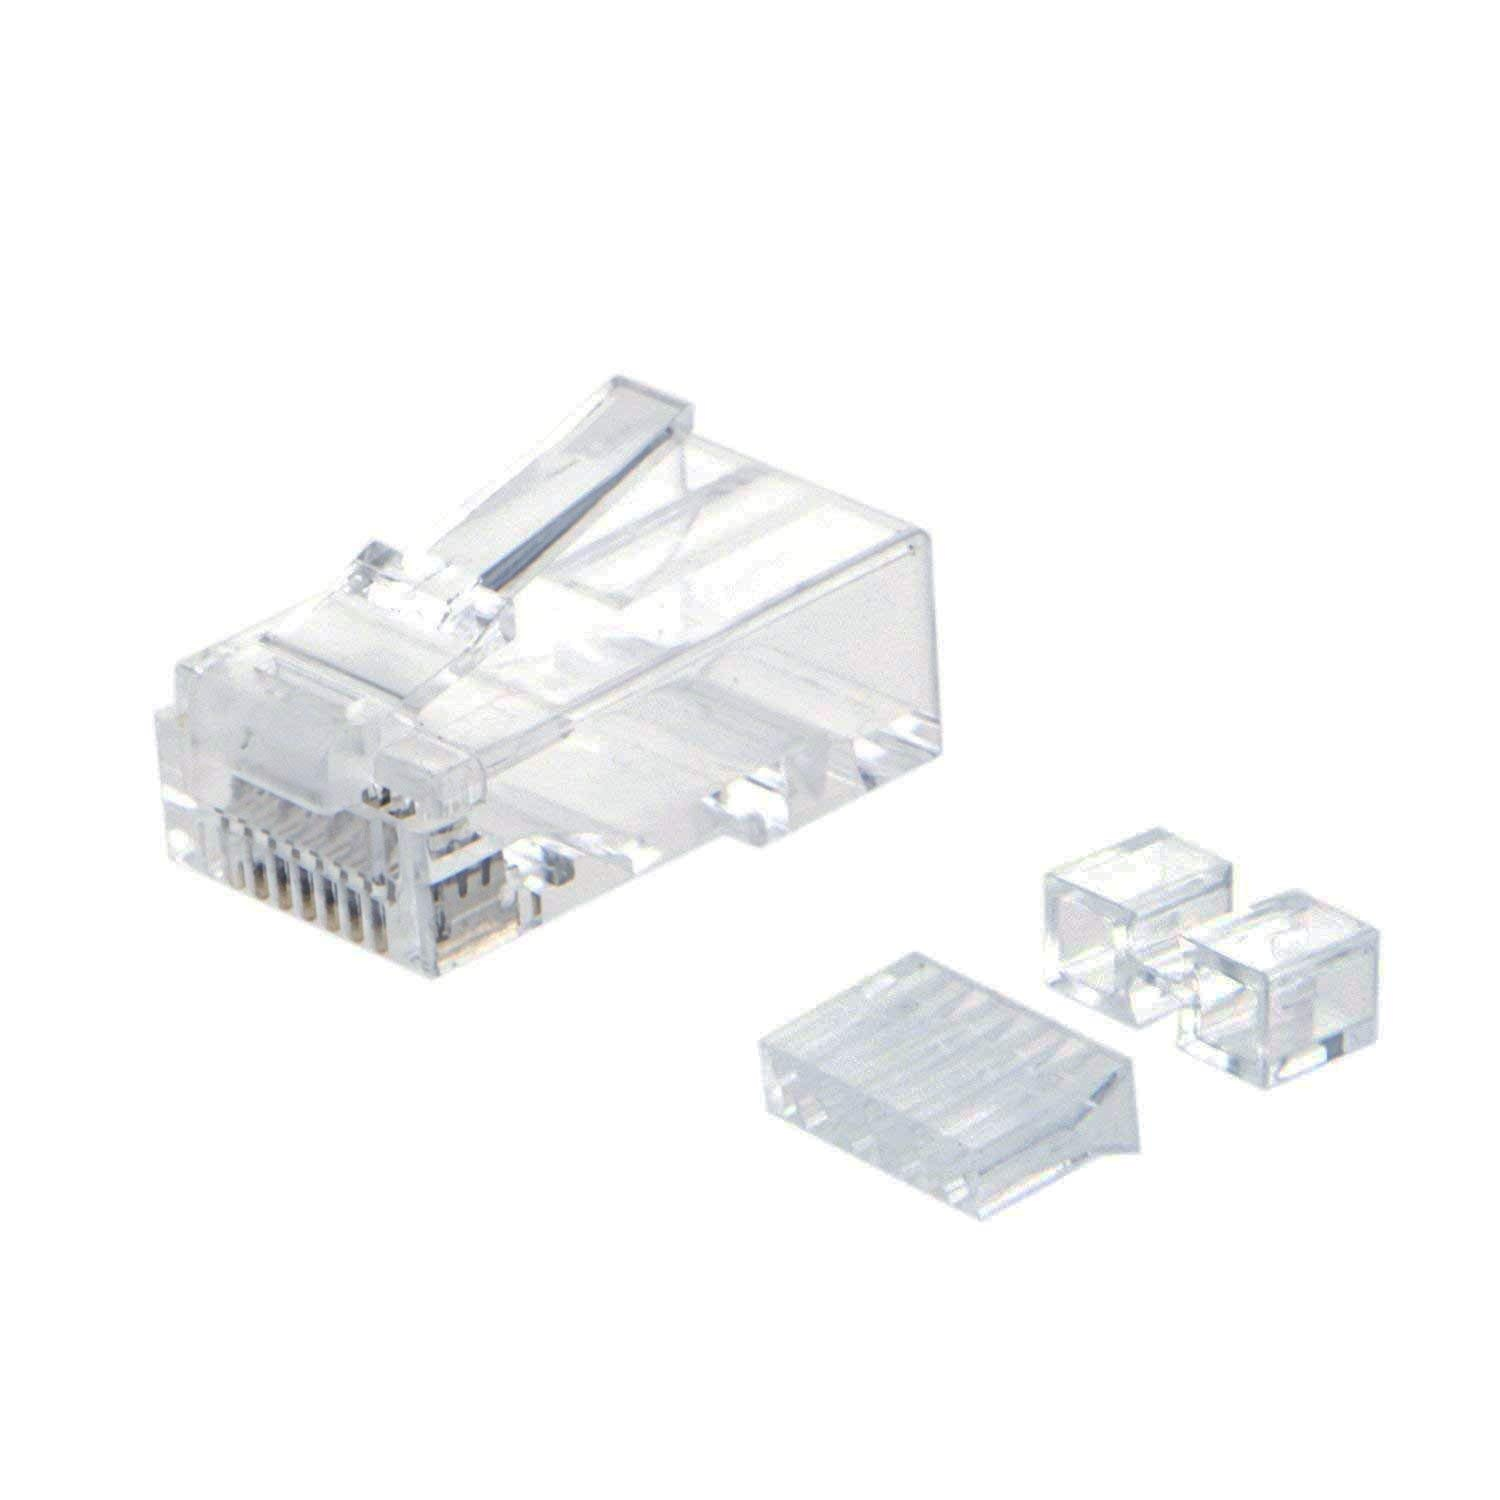 China wholesale Ethernet Cables - Cat 6A RJ45 Modular Plug (Three-Piece Suit), #CL0202 – CableCreation